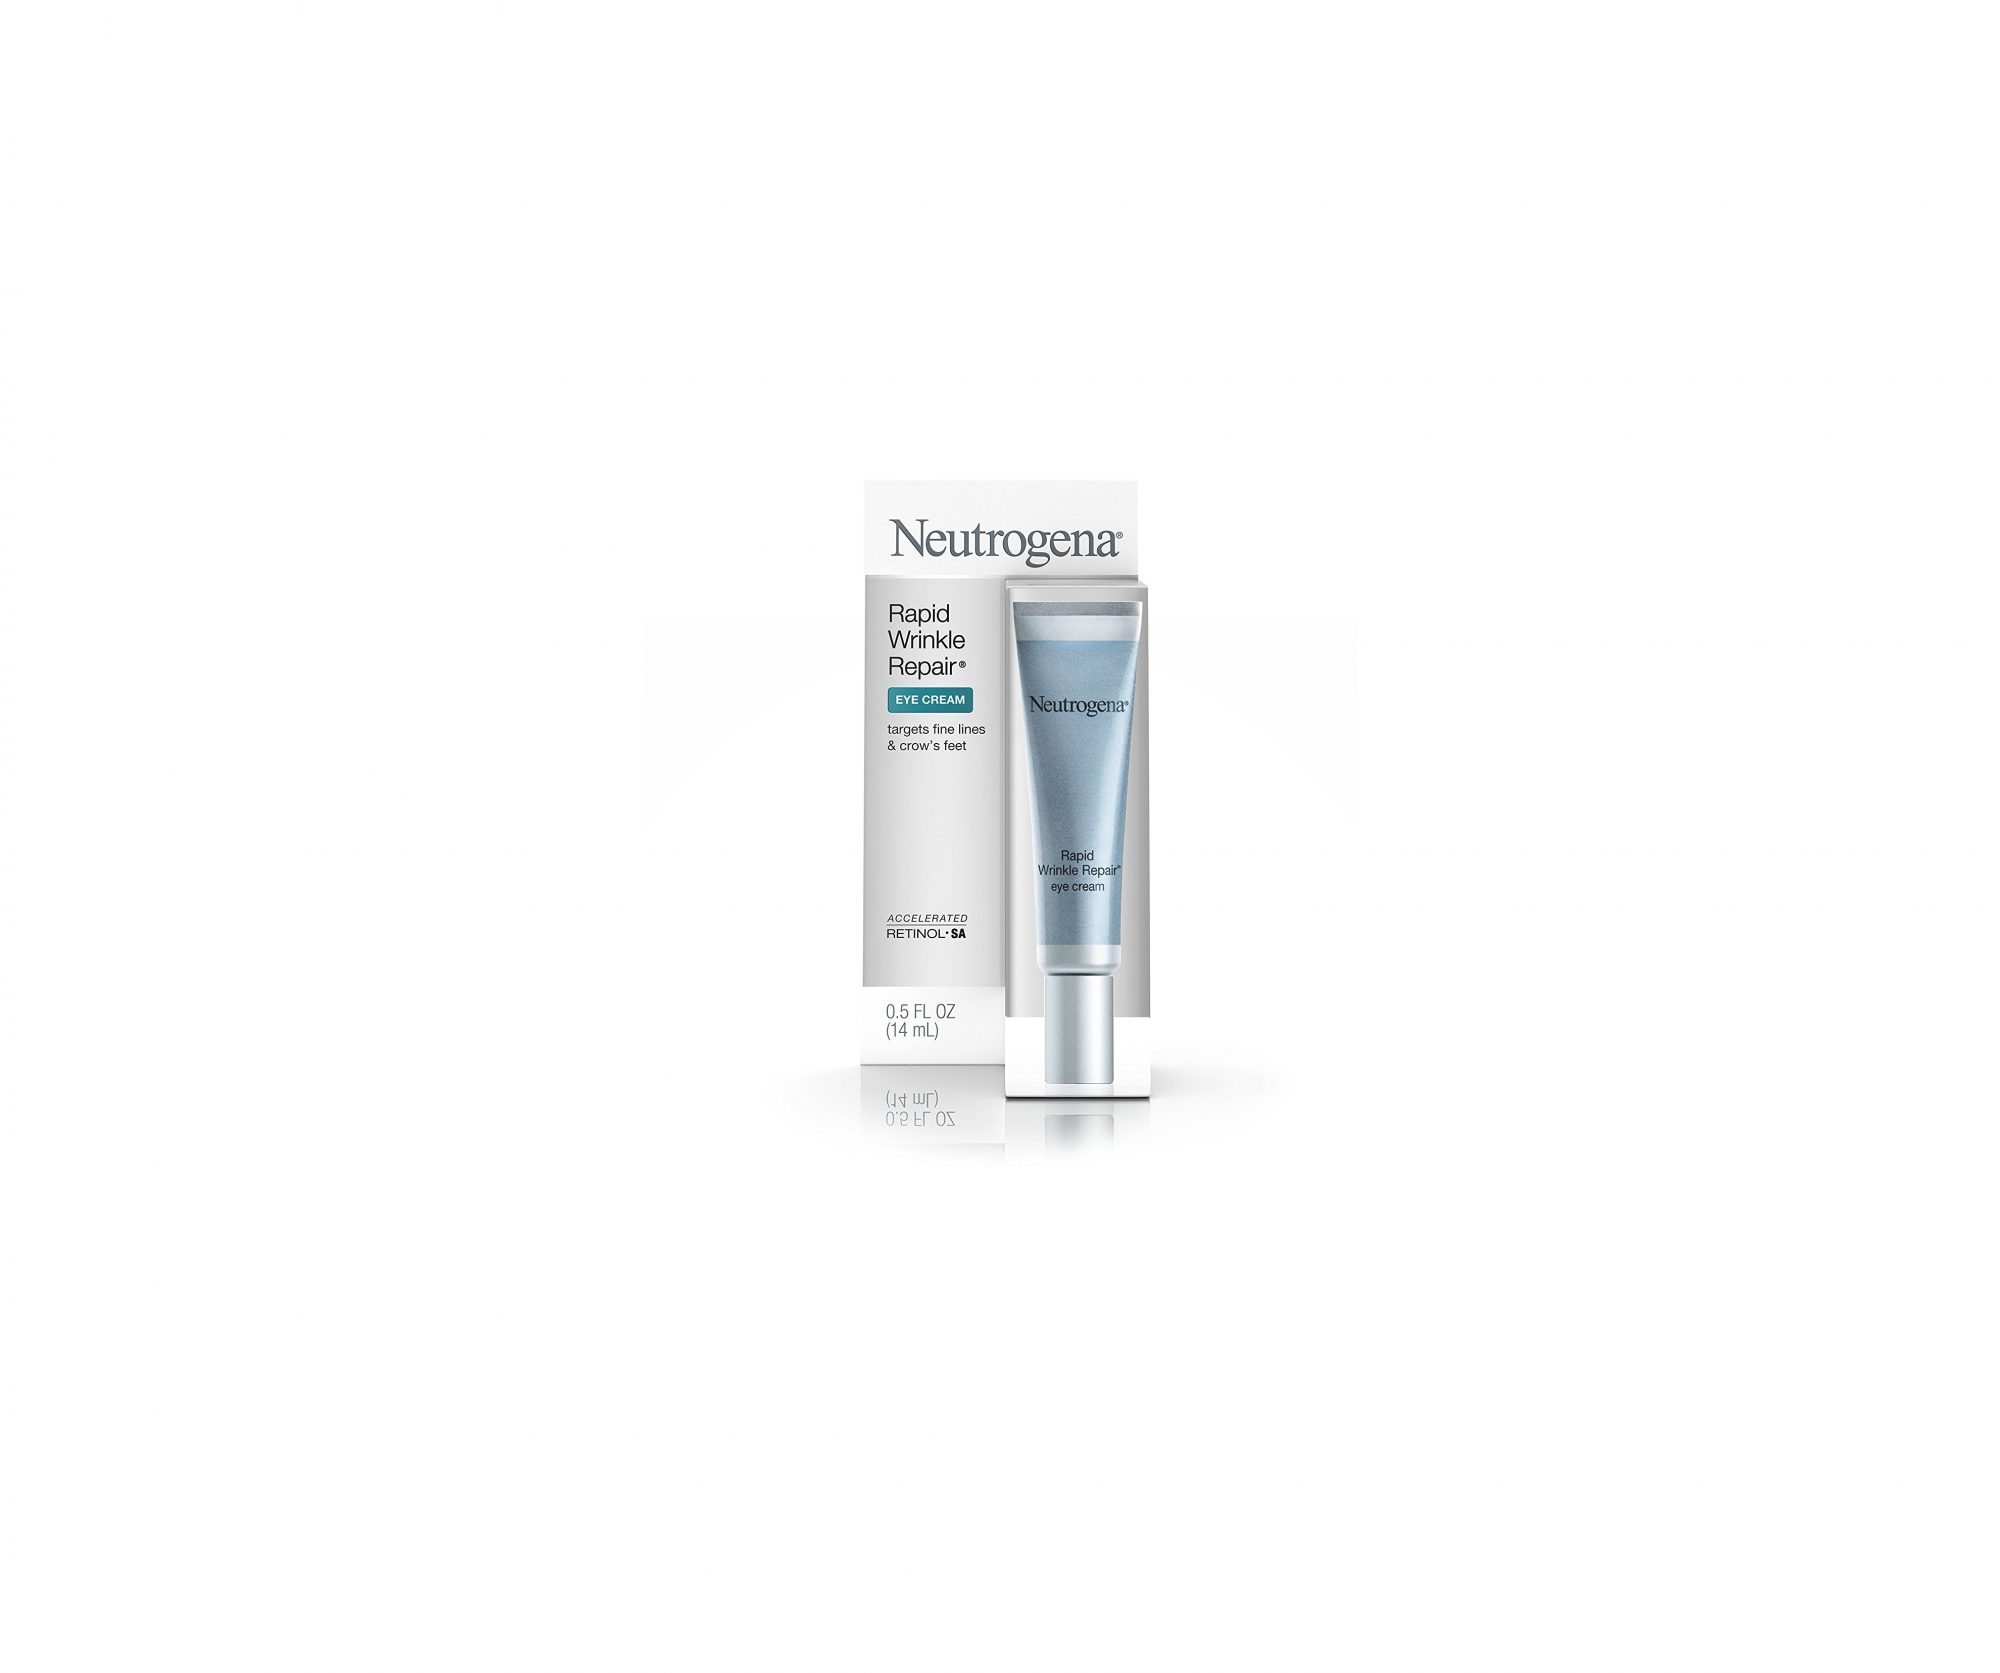 neutrogena-wrinkle-repair-cream